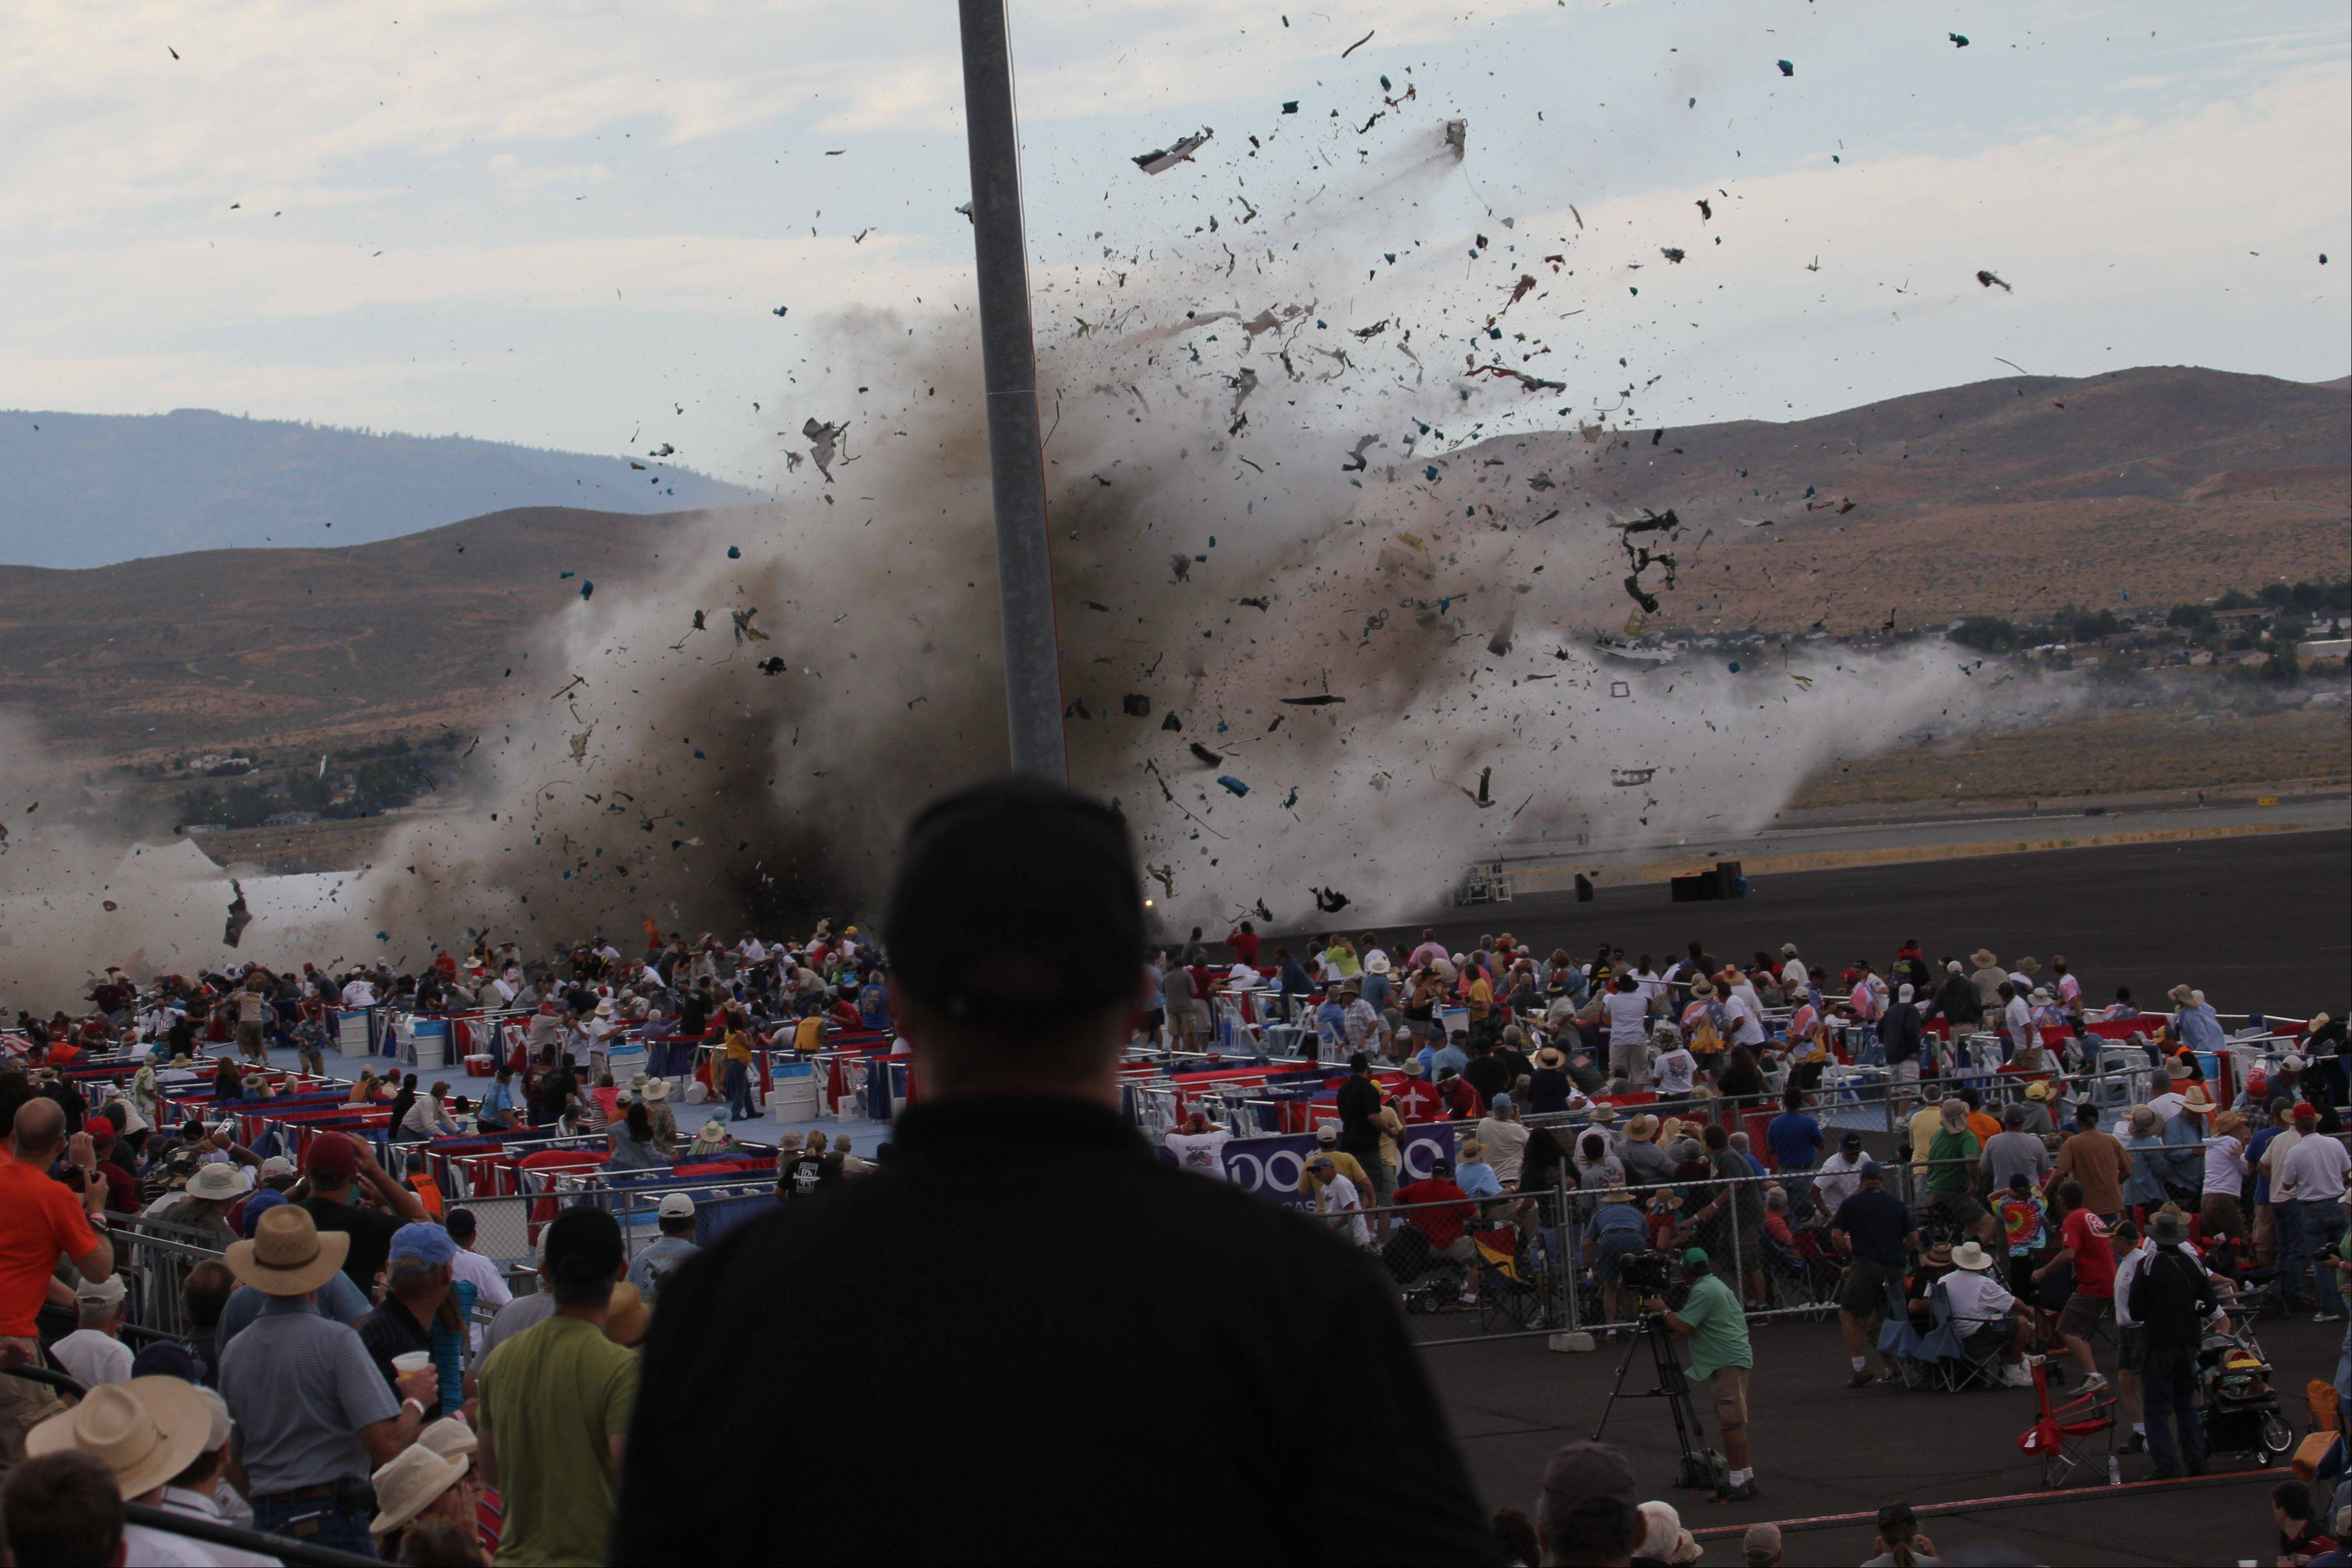 In this Sept. 16, 2011 file photo, A P-51 Mustang airplane crashes into the edge of the grandstands at the Reno Air show in Reno, Nev, leaving 11 people dead and 70 seriously injured. The National Transportation Safety Board, meeting in Washington, will determine the cause of the September 2011 crash of a modified World War II-era fighter plane into a spectator area during the 2011 National Championship Air Races in Reno on Monday, Aug. 27, 2012.